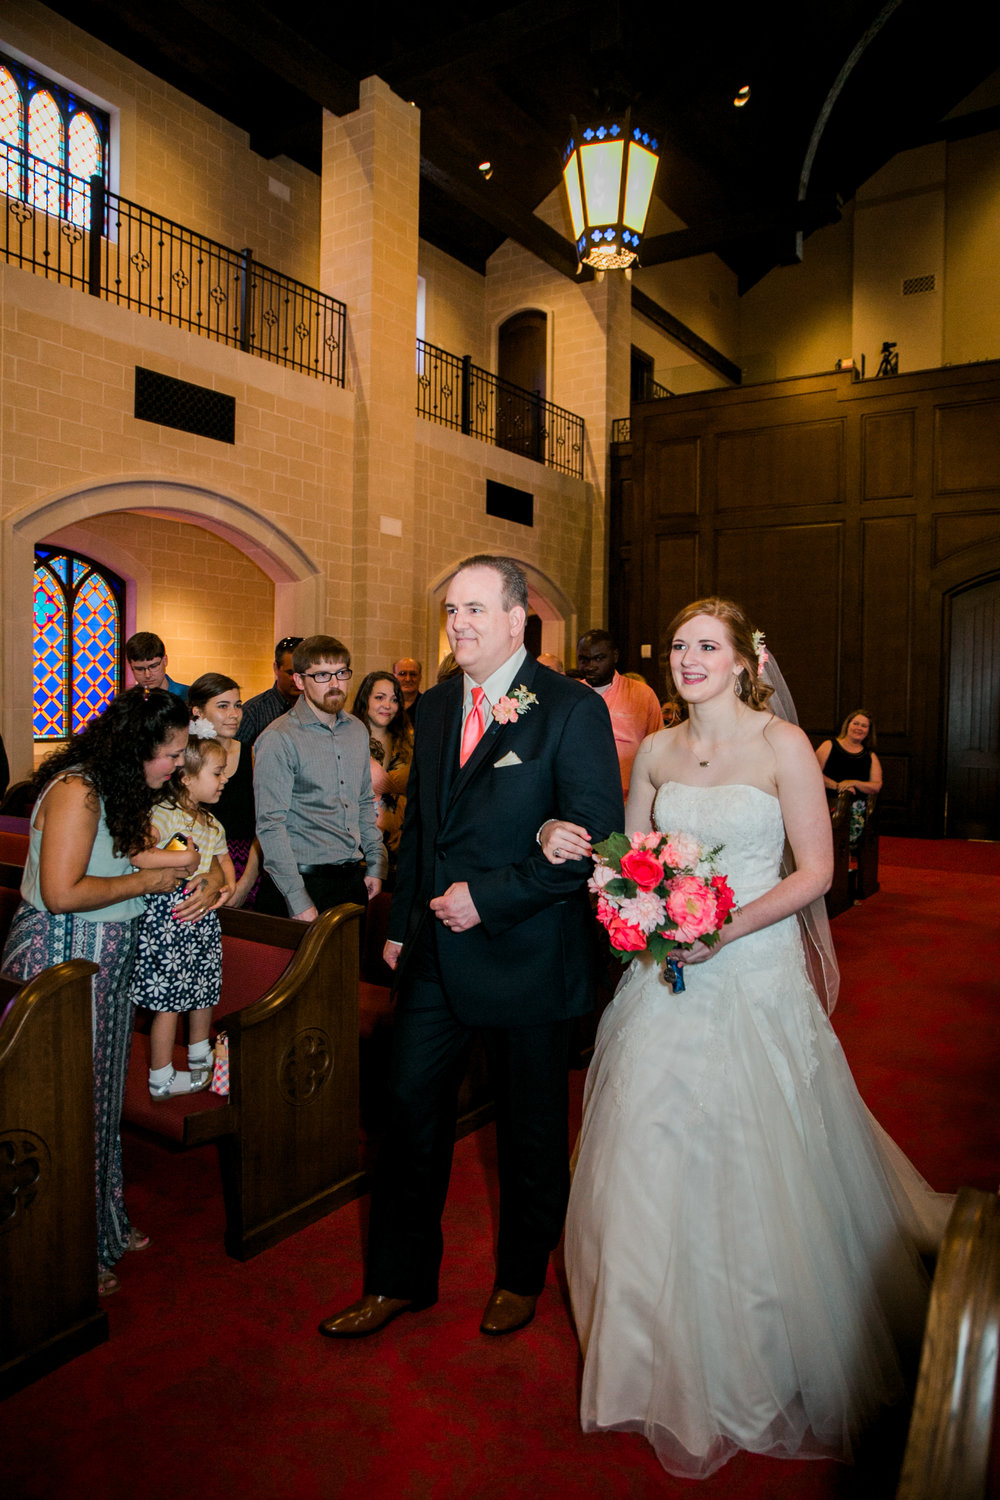 mcmurrywedding-049.jpg